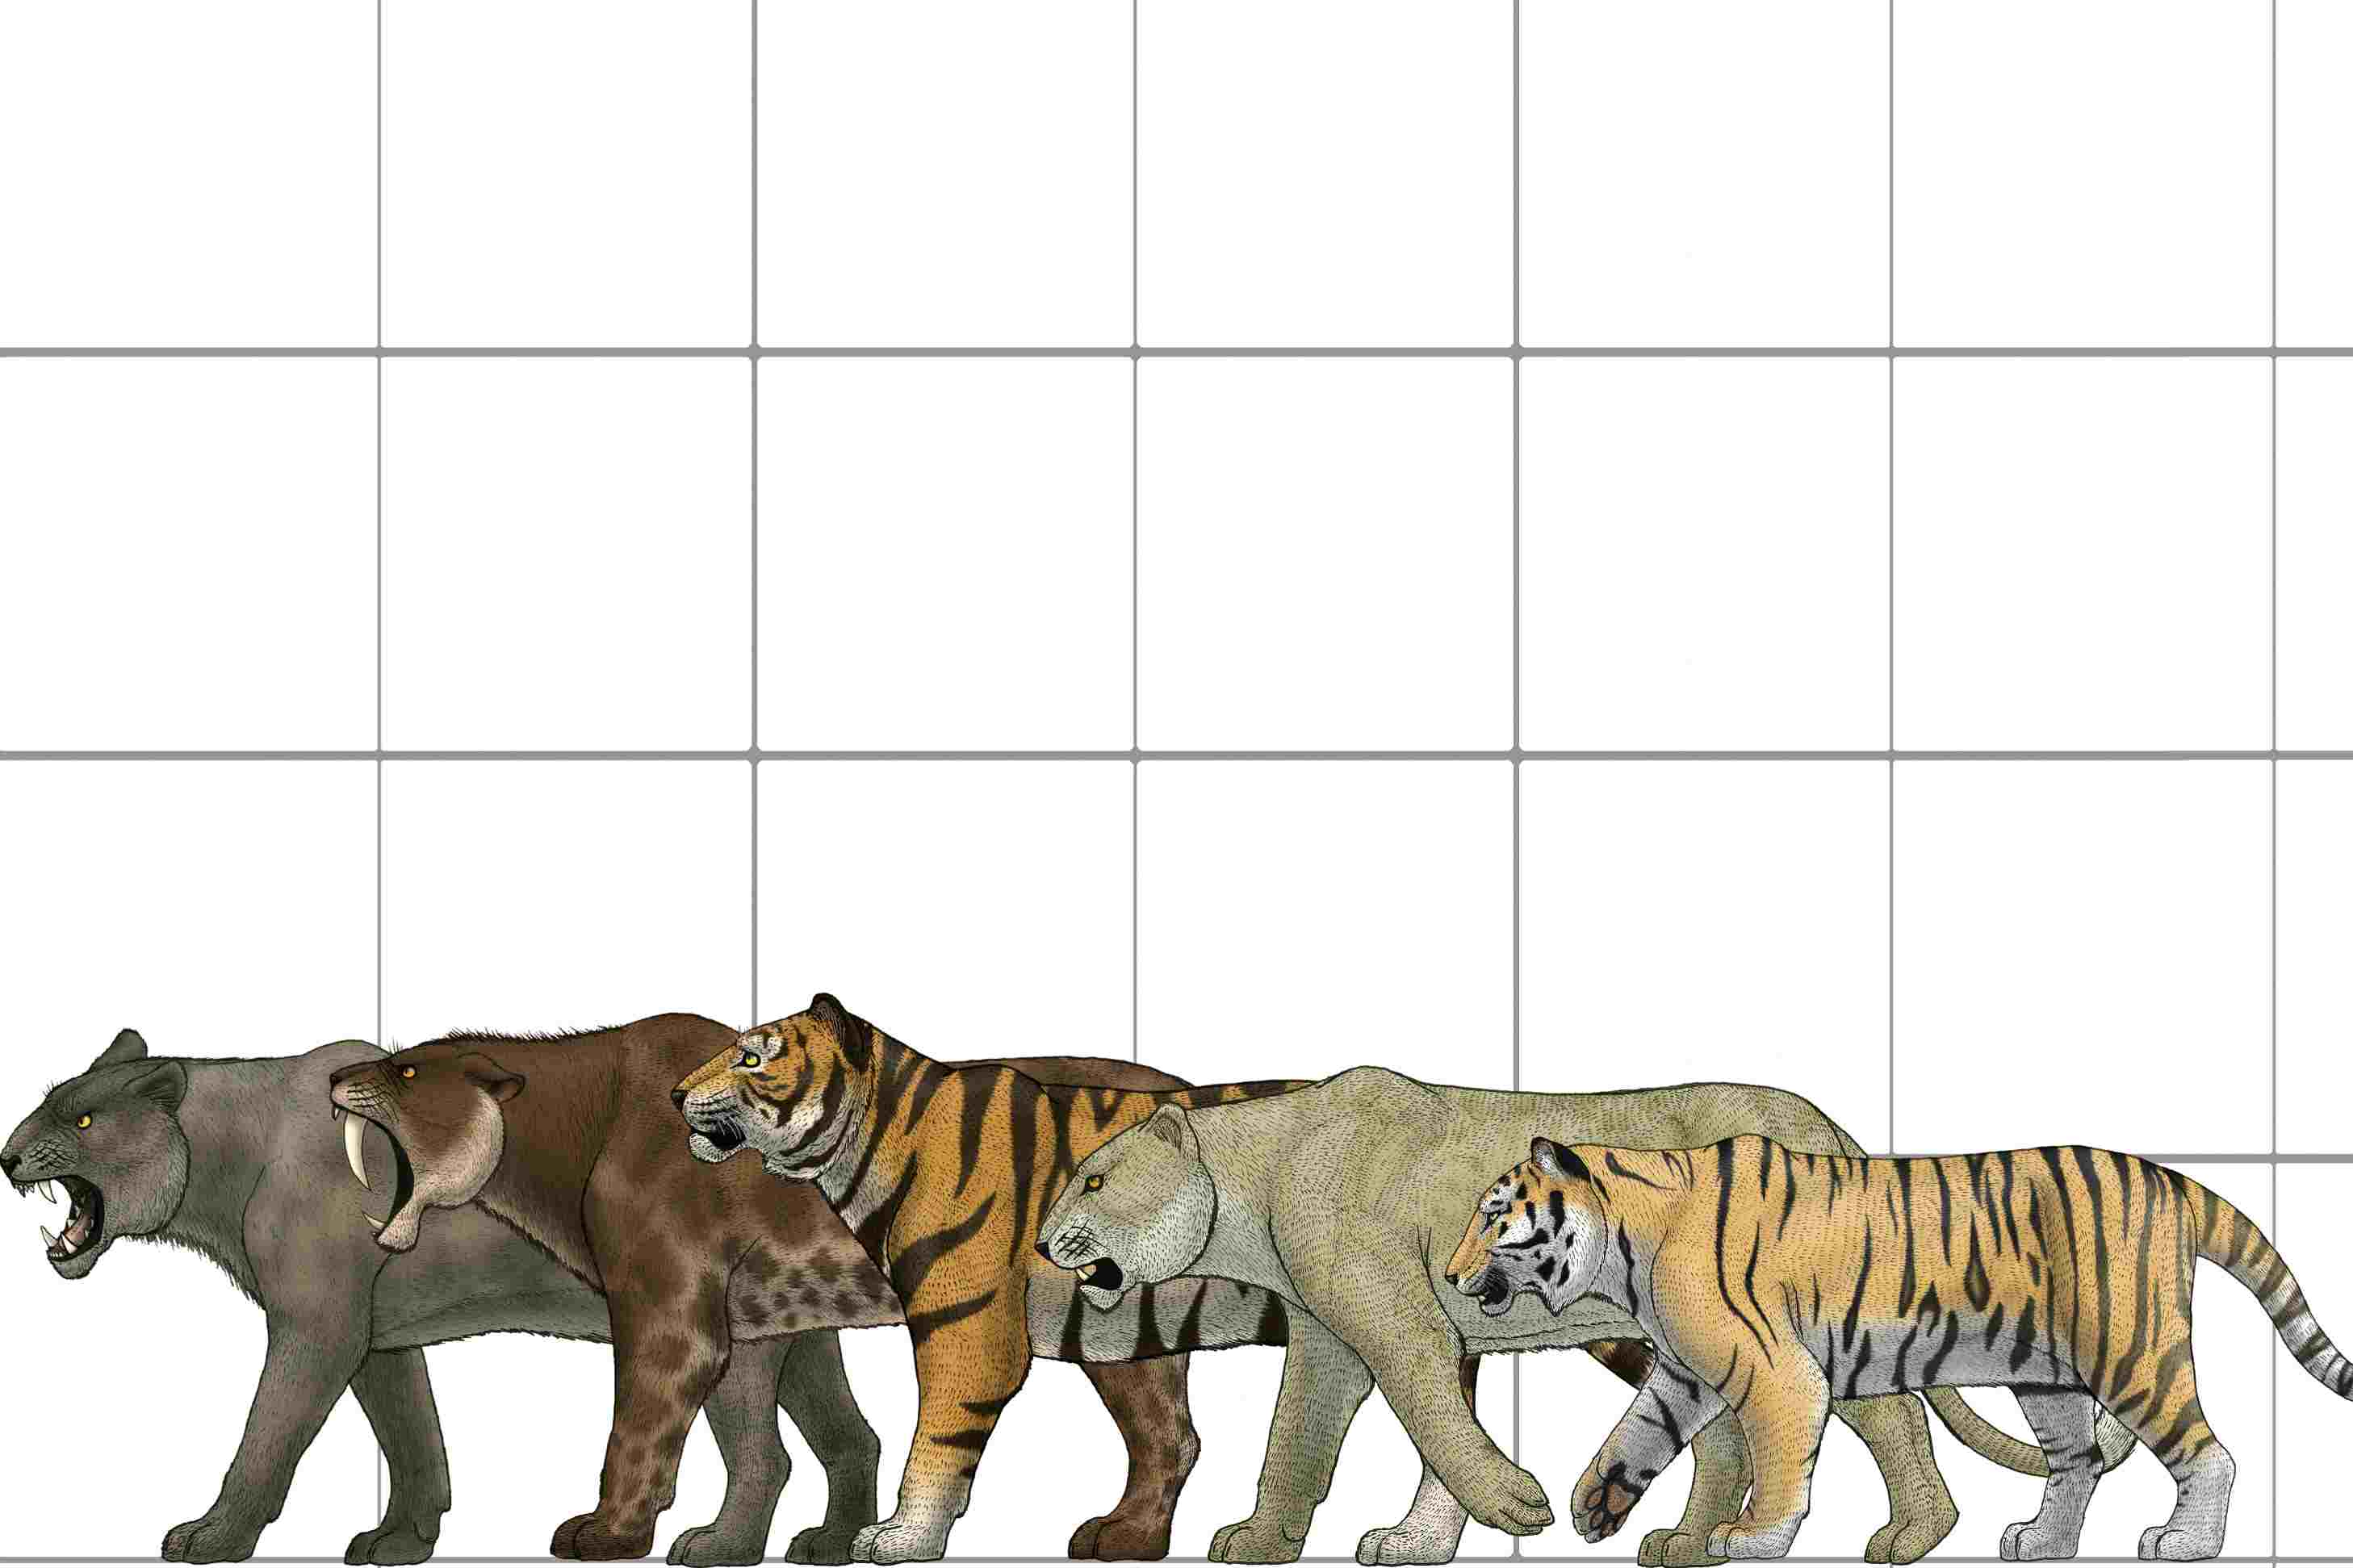 Smilodon or Saber-Toothed Cat Trivia